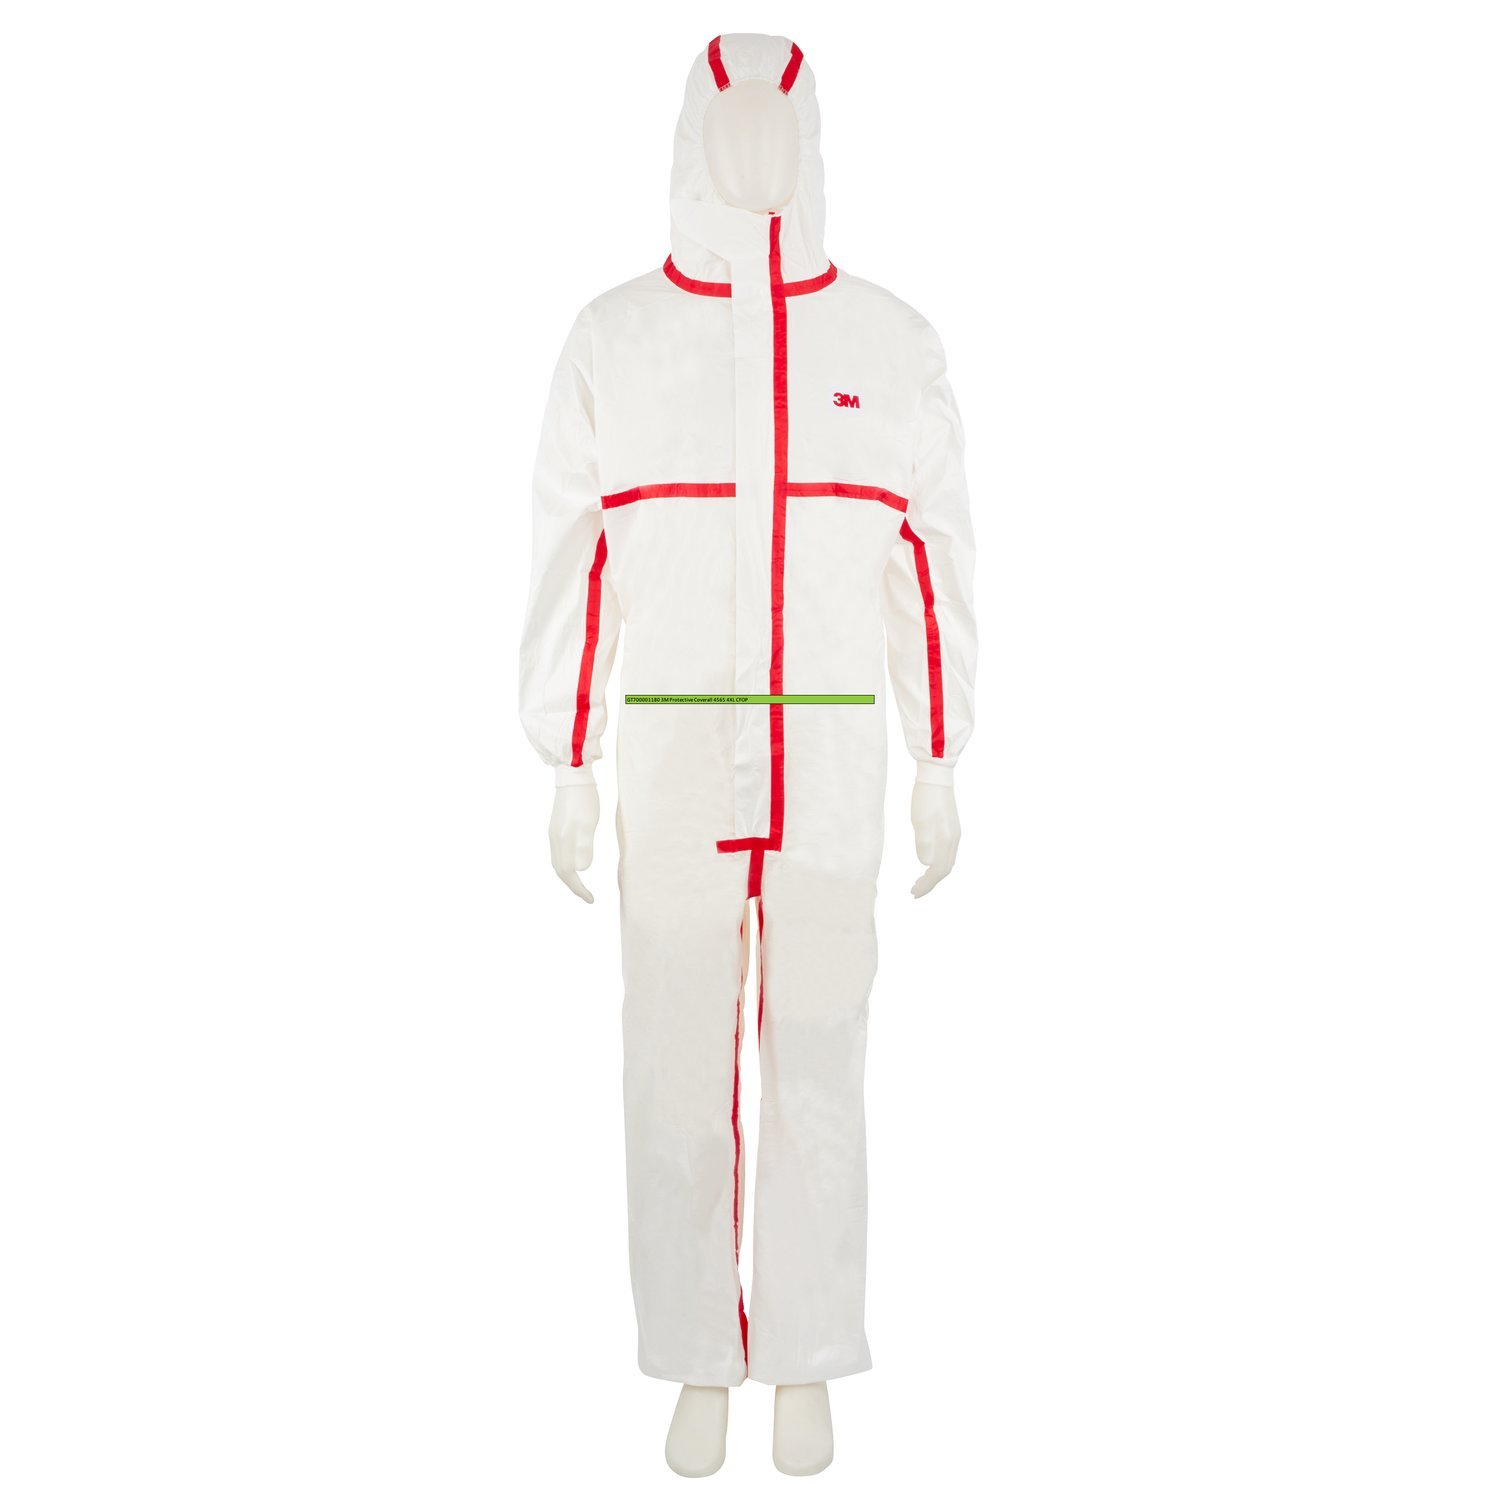 3M Protective Coverall 4565-2XL